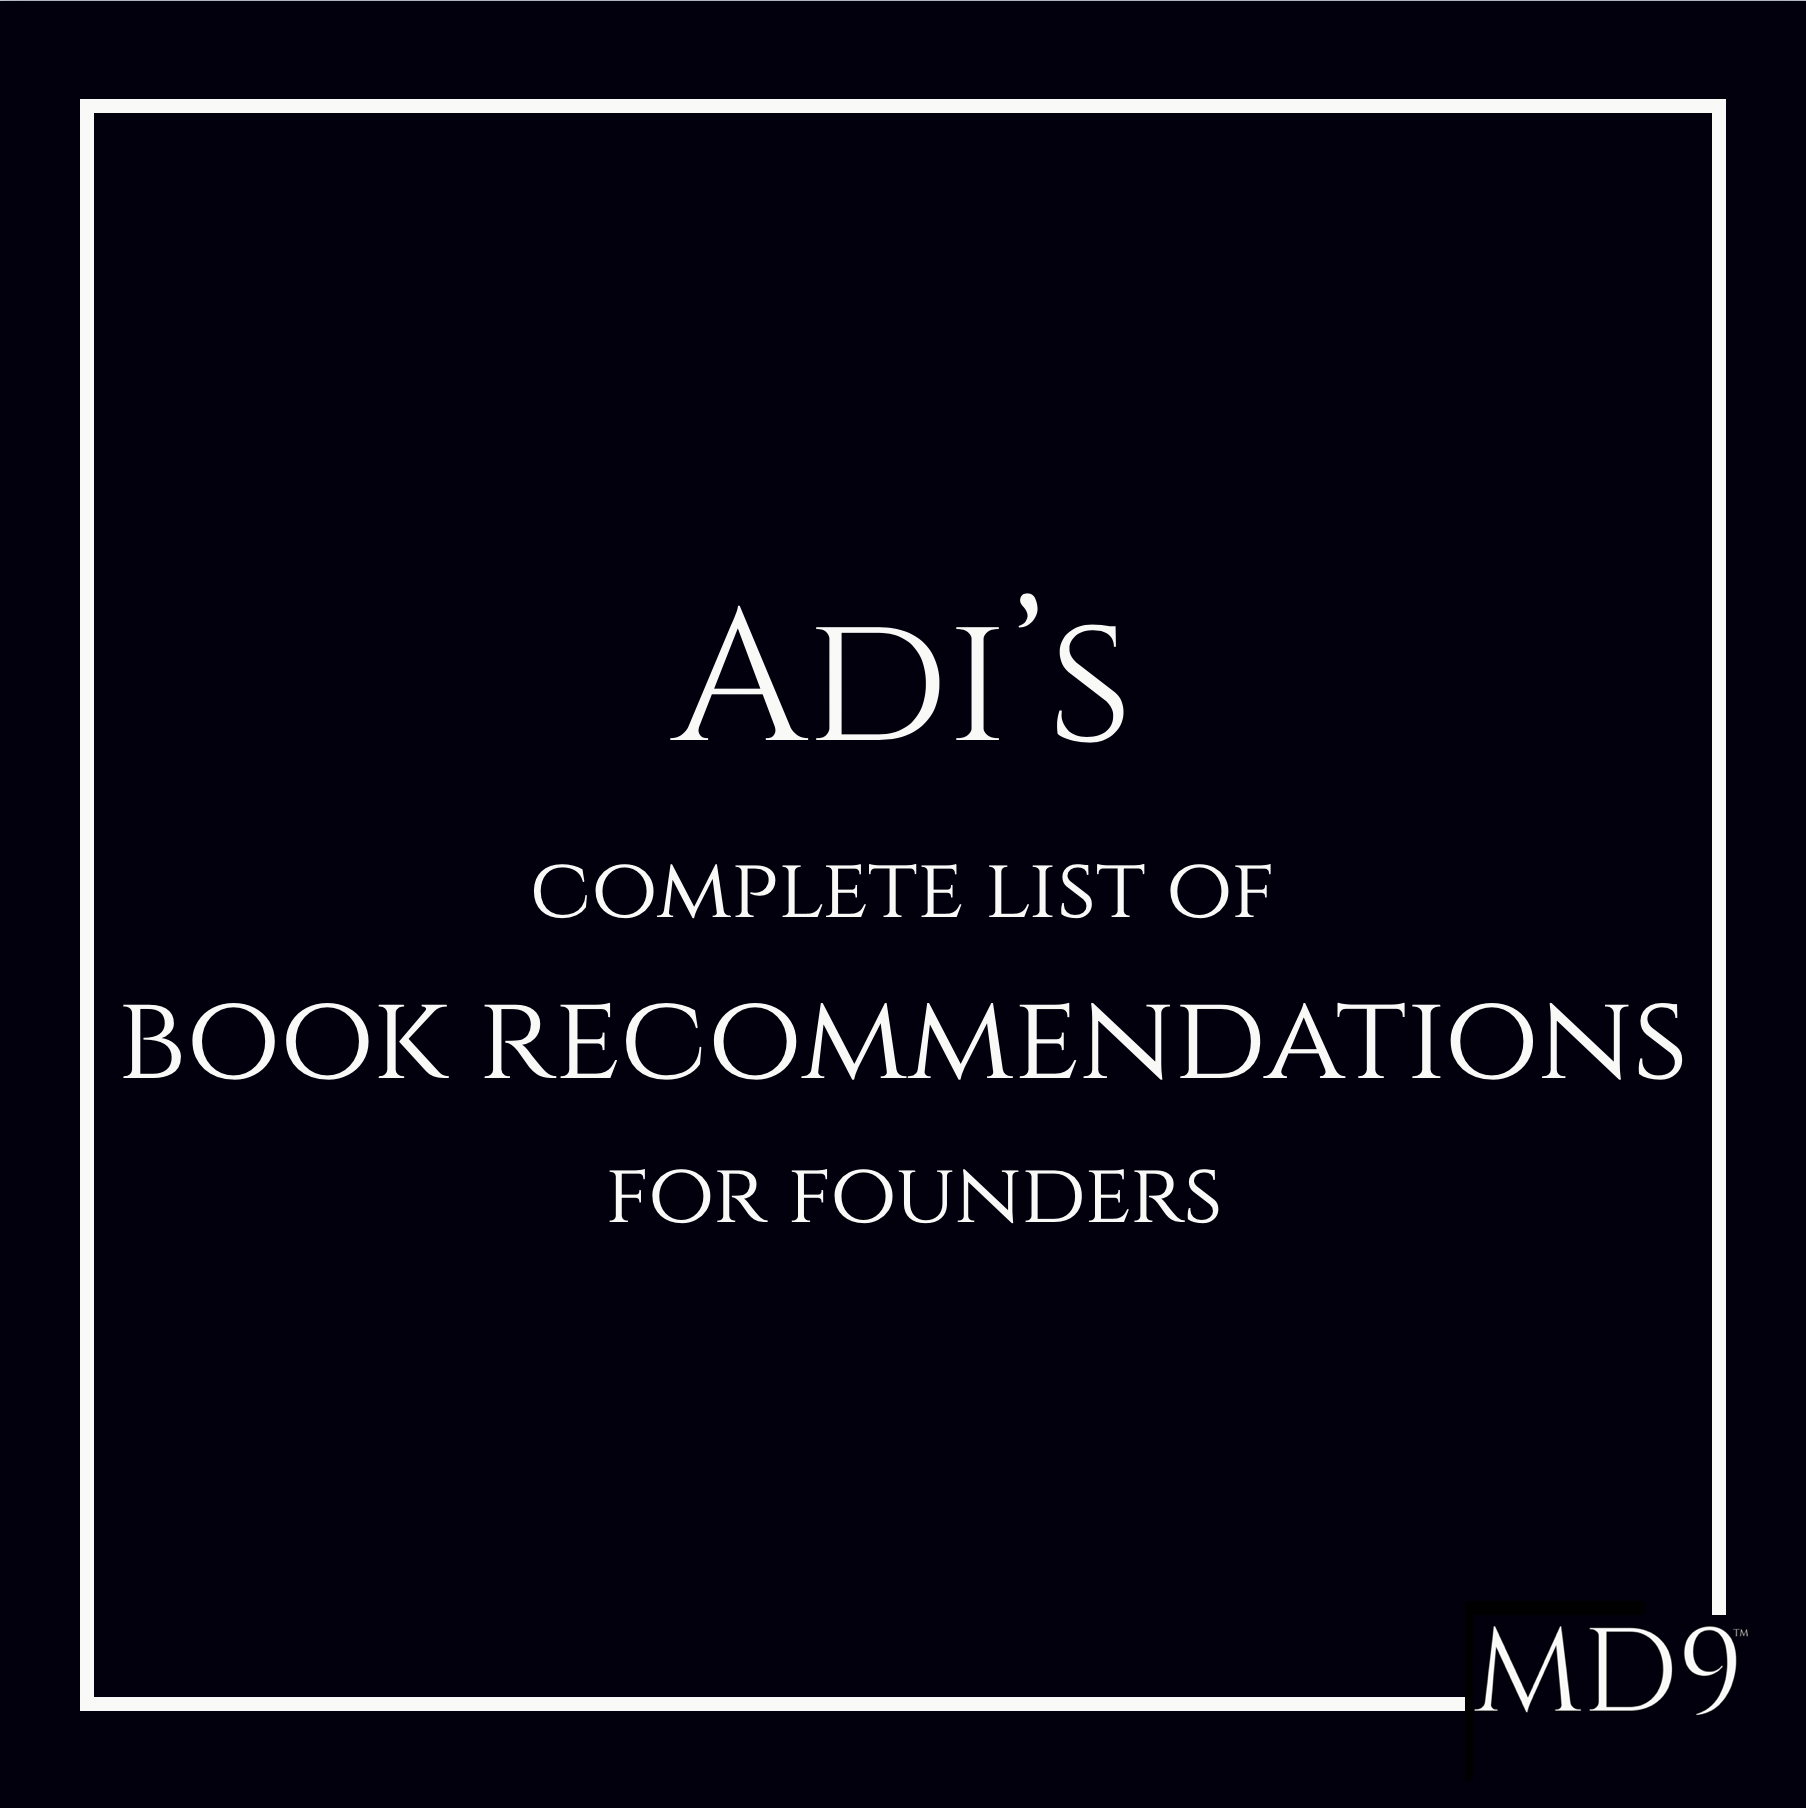 Adi's Complete List Of Book Recommendations For Founders